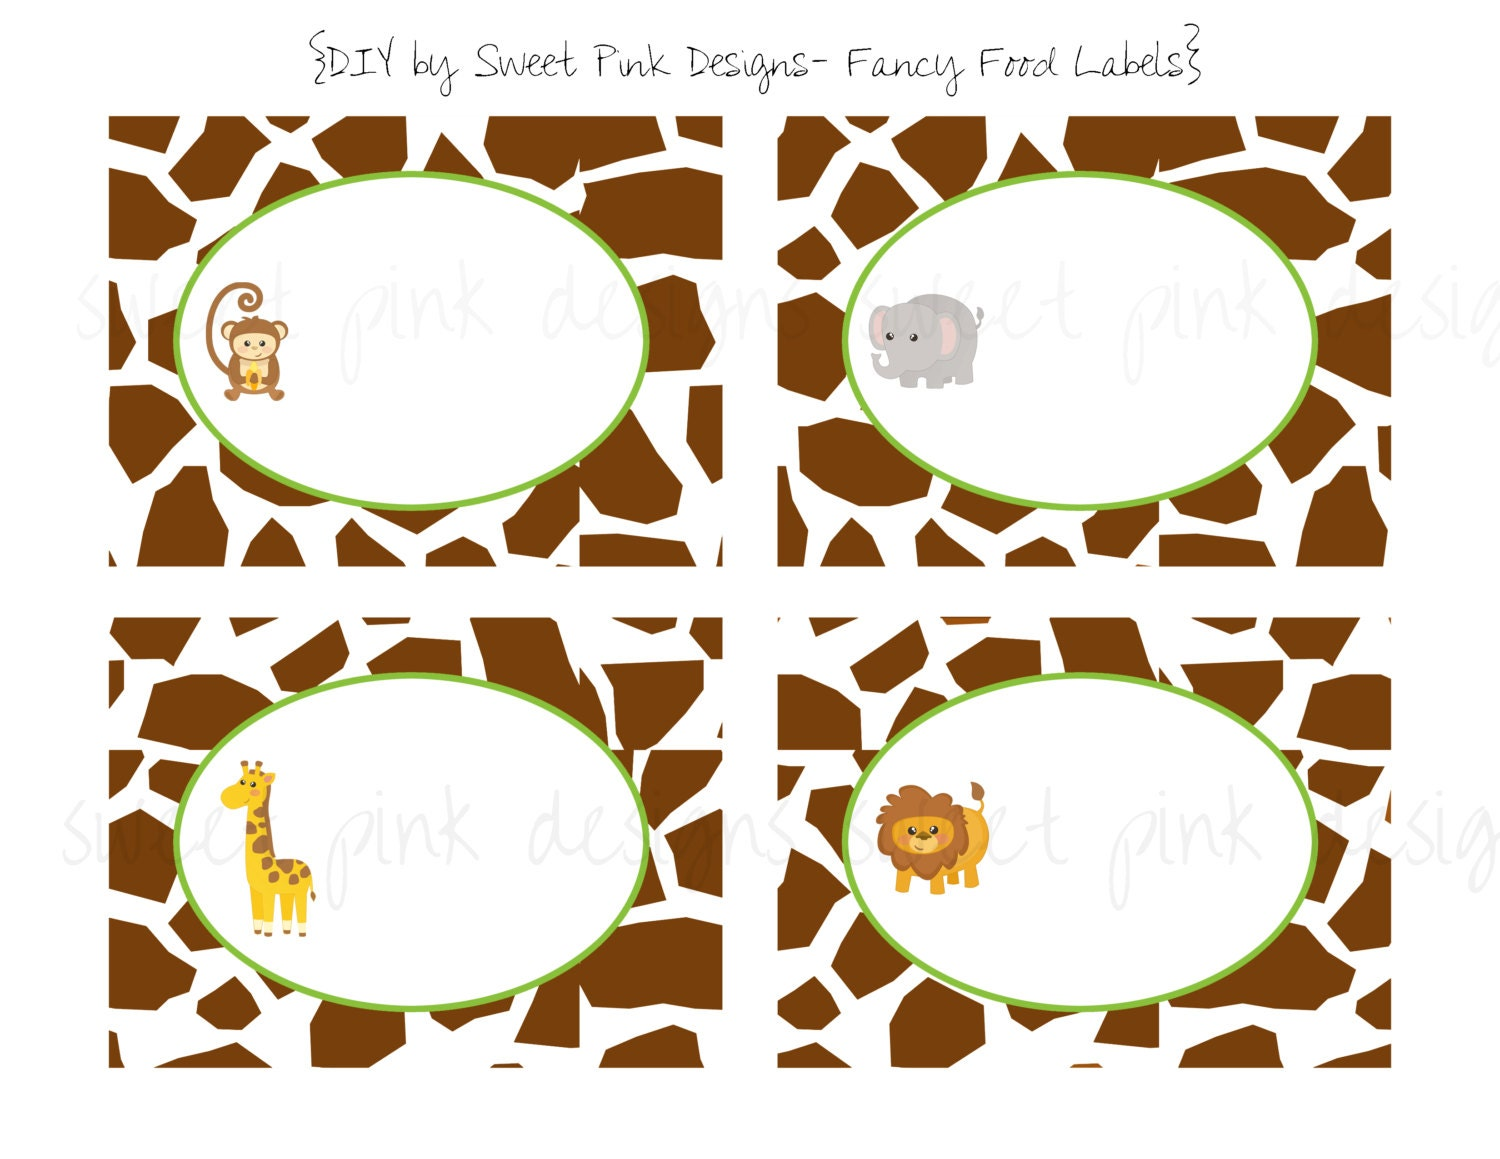 Jungle AnimalsFancy Food Labels by Sweetpinkdesigns on Etsy